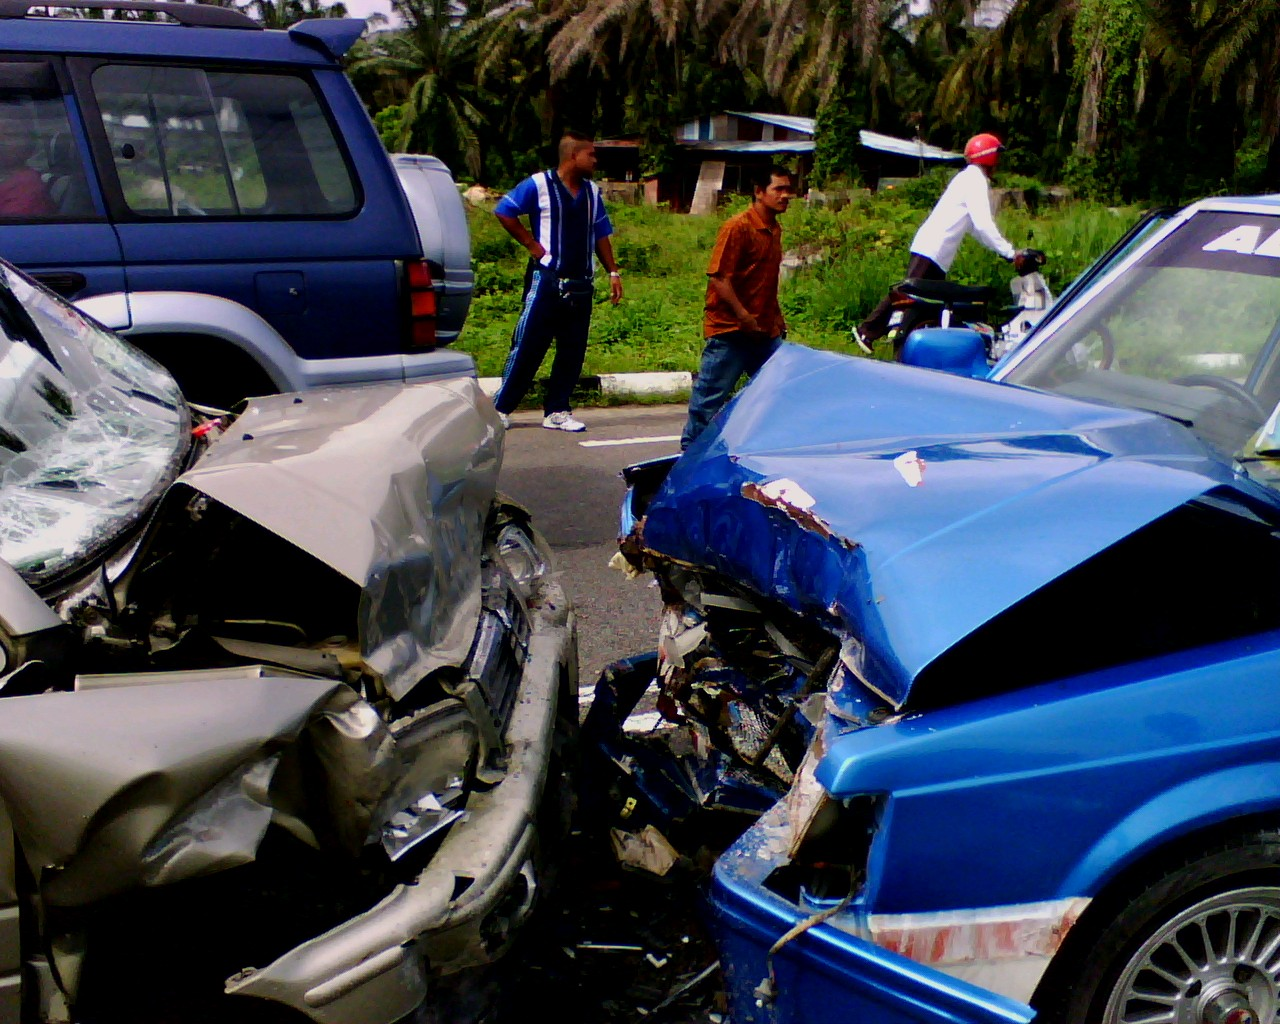 Got Injured in an Accident? Contact Personal Injury Doctor in greater Los Angeles